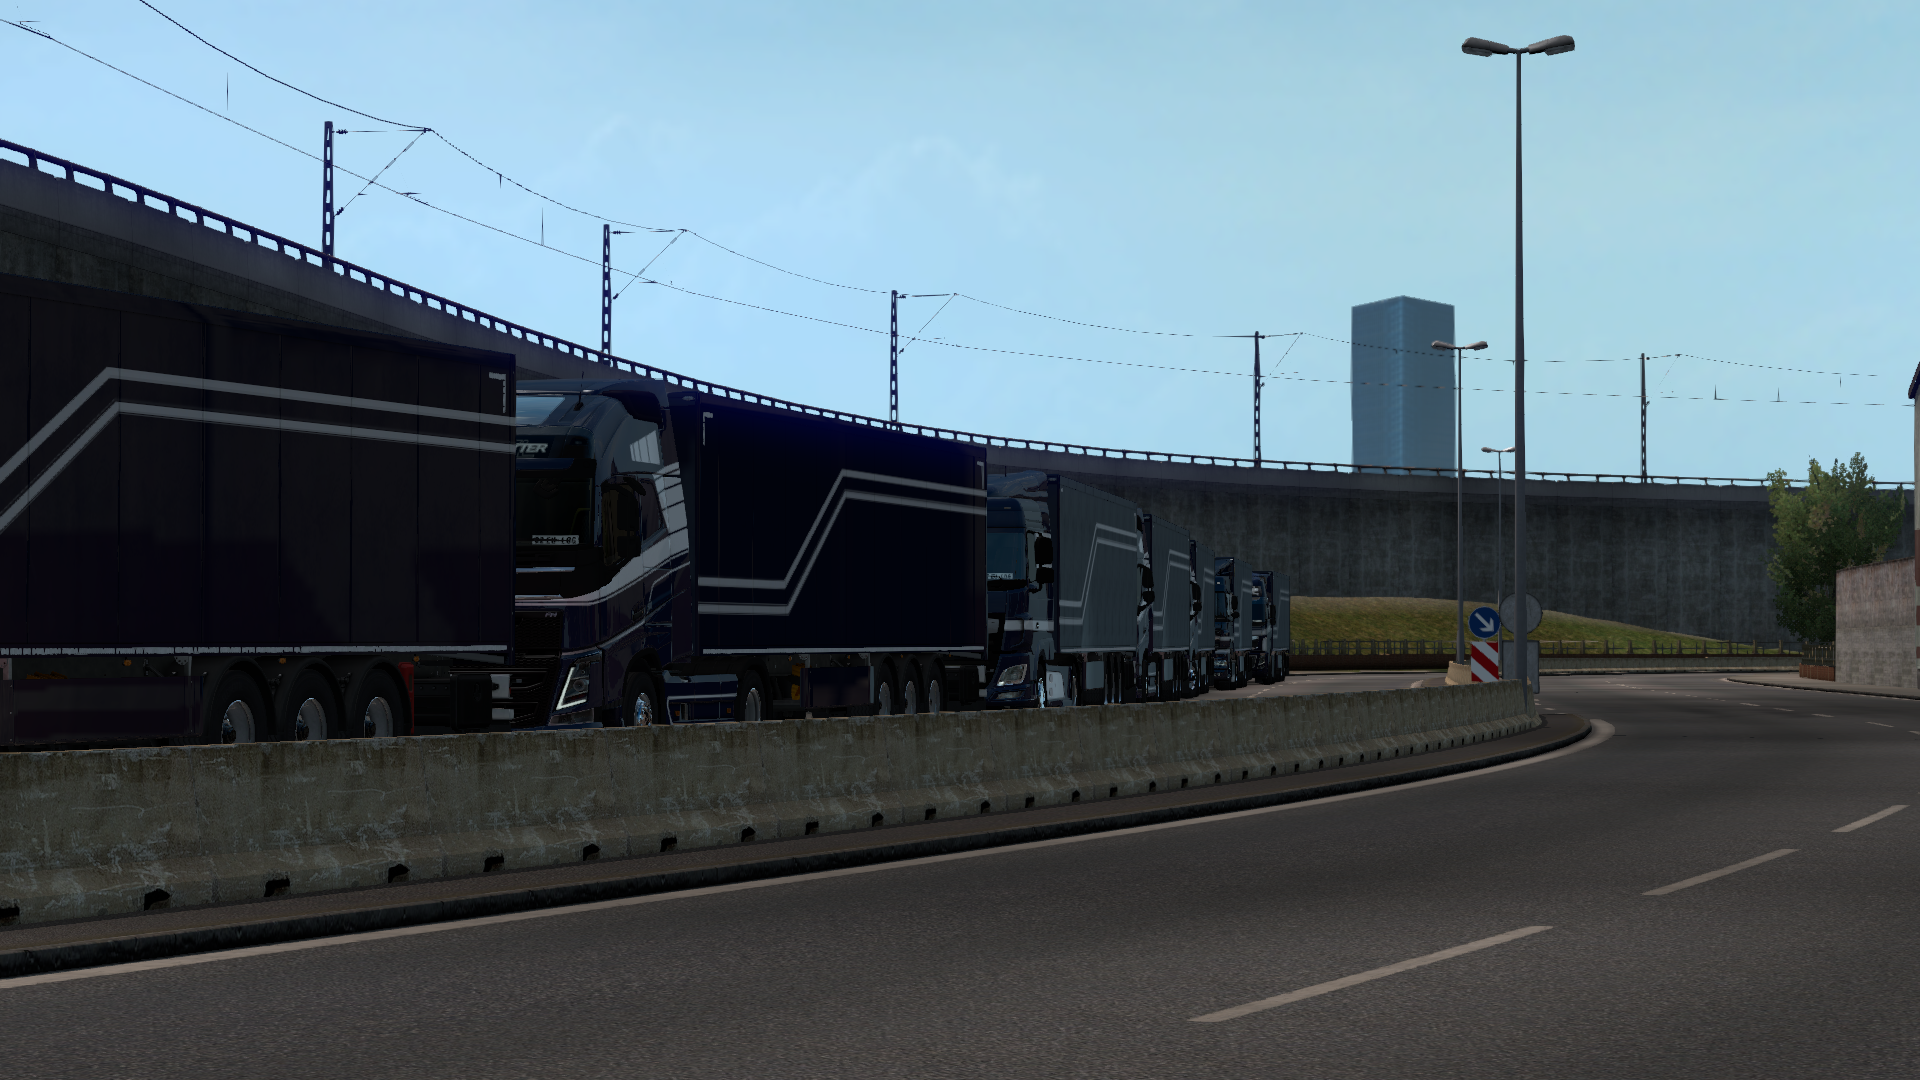 ets2_20180929_233142_00.png